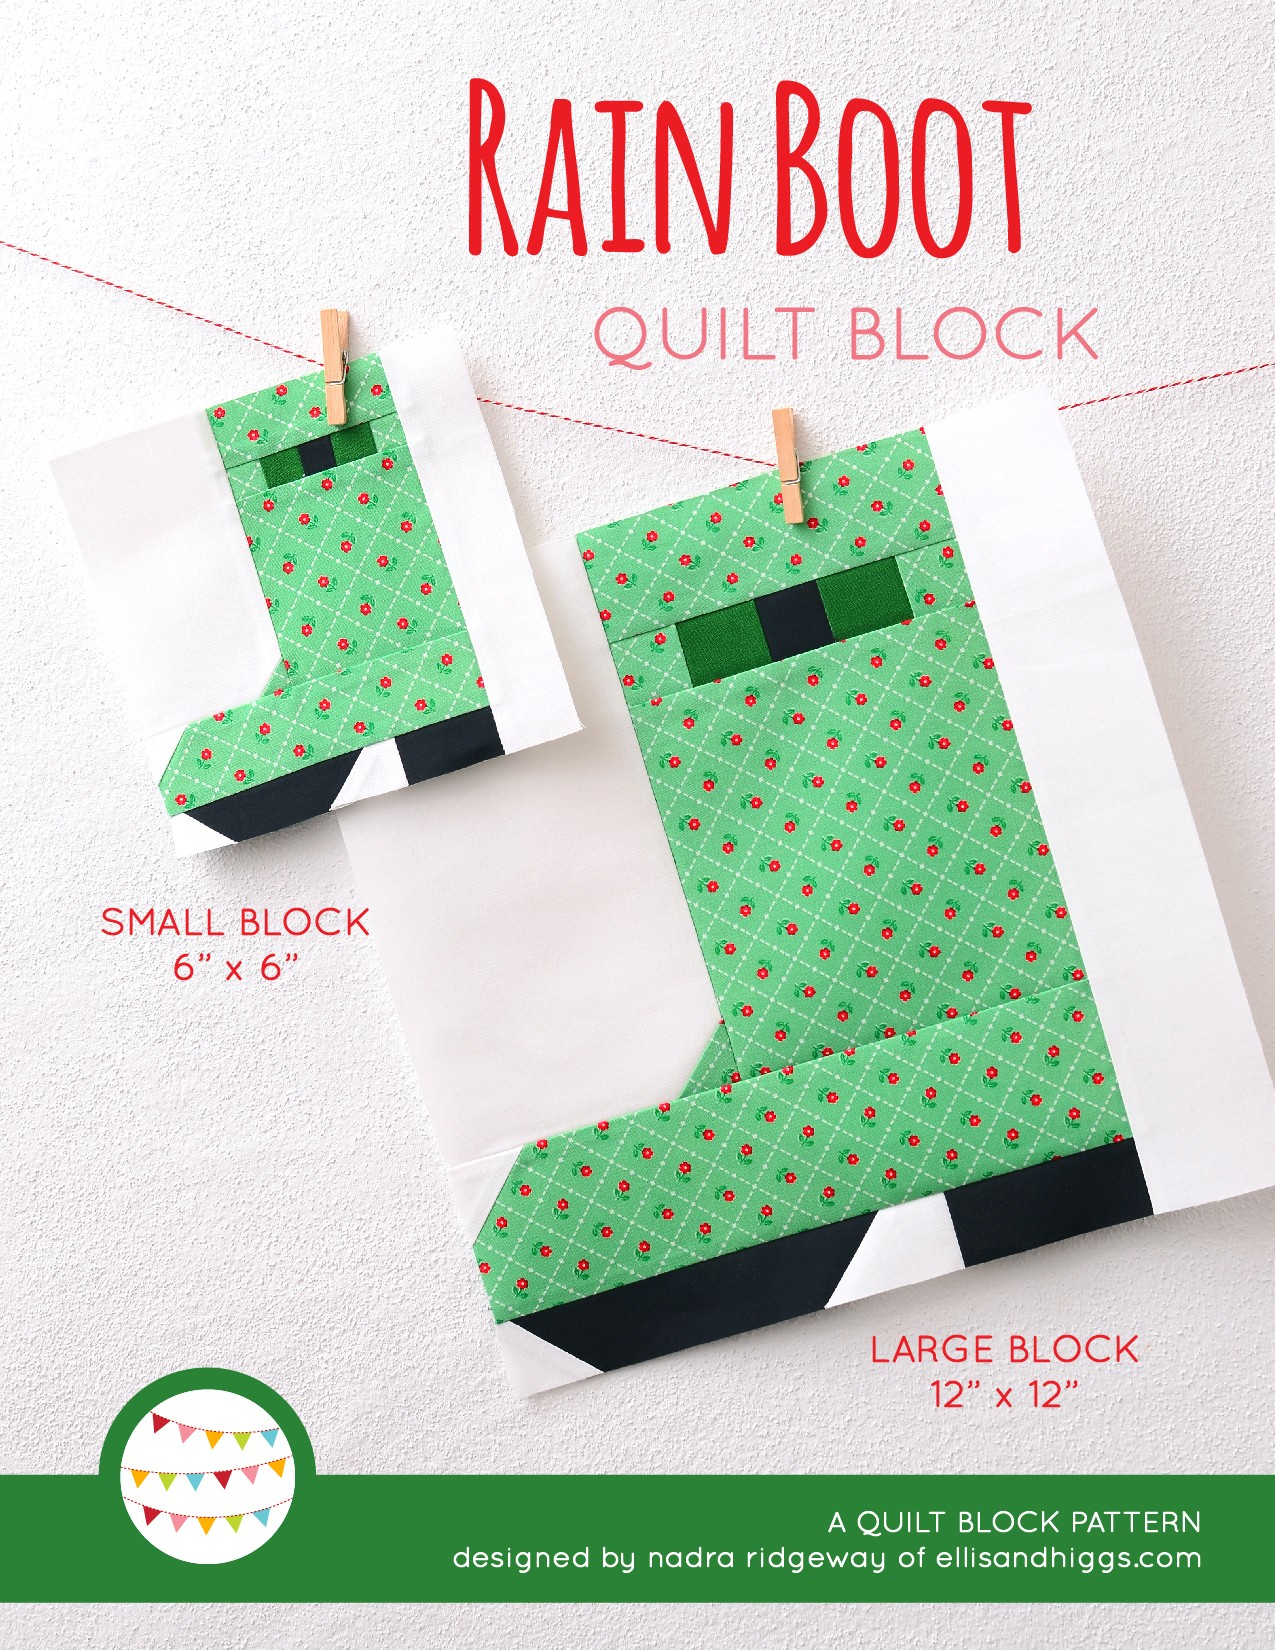 Rain Boots quilt block in two sizes hanging on a wall